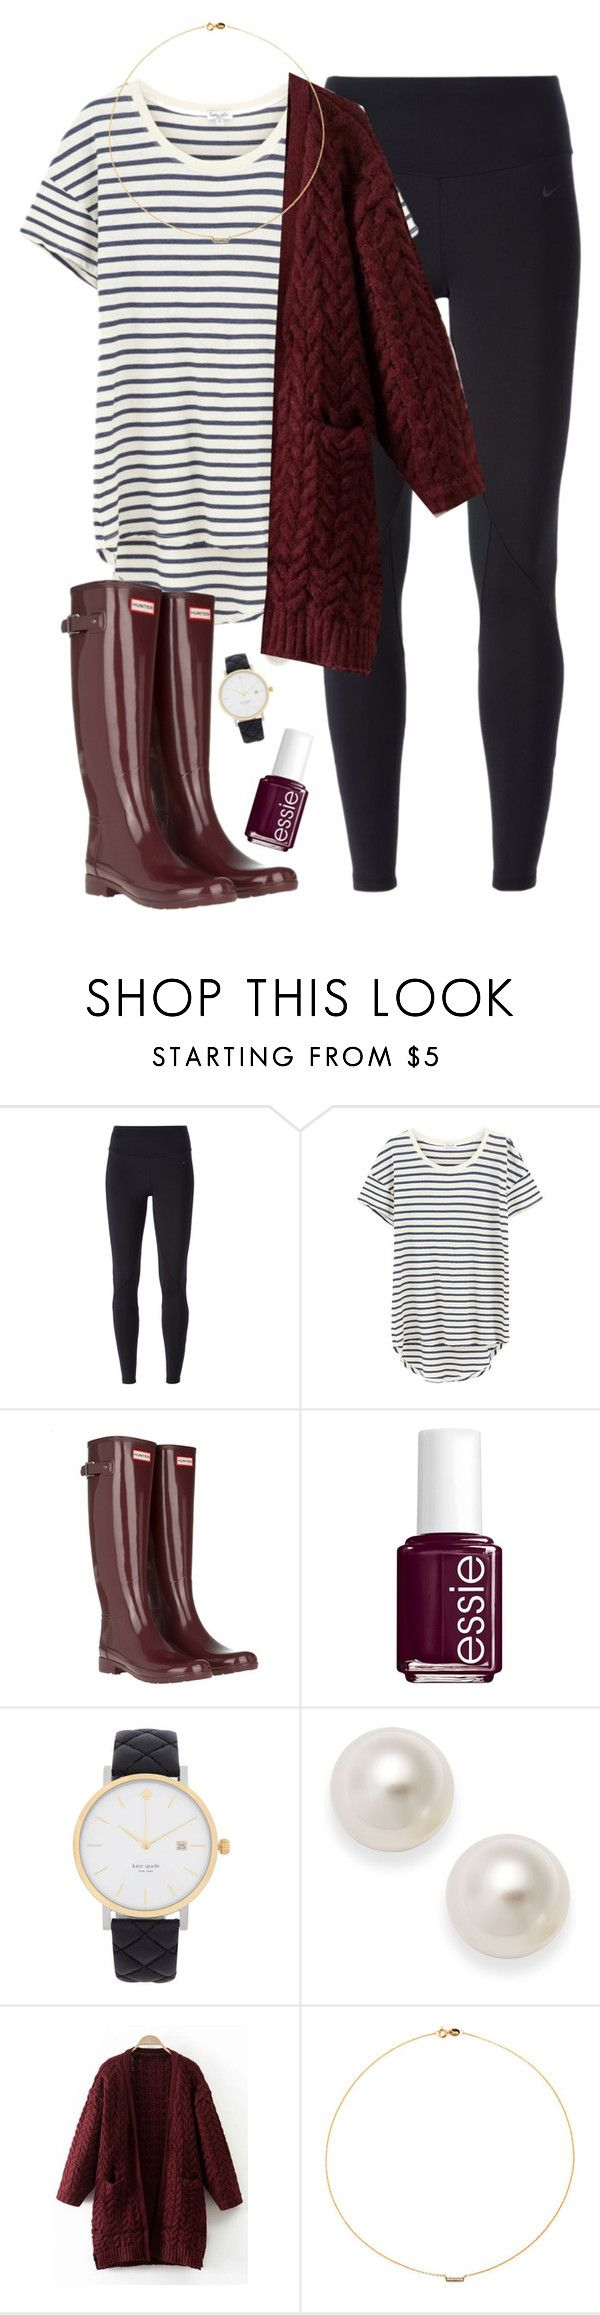 """""""{Look What I Found}"""" by star-lit-fashion ❤ liked on Polyvore featuring NIKE, Splendid, Hunter, Essie, Kate Spade and Sole Society"""